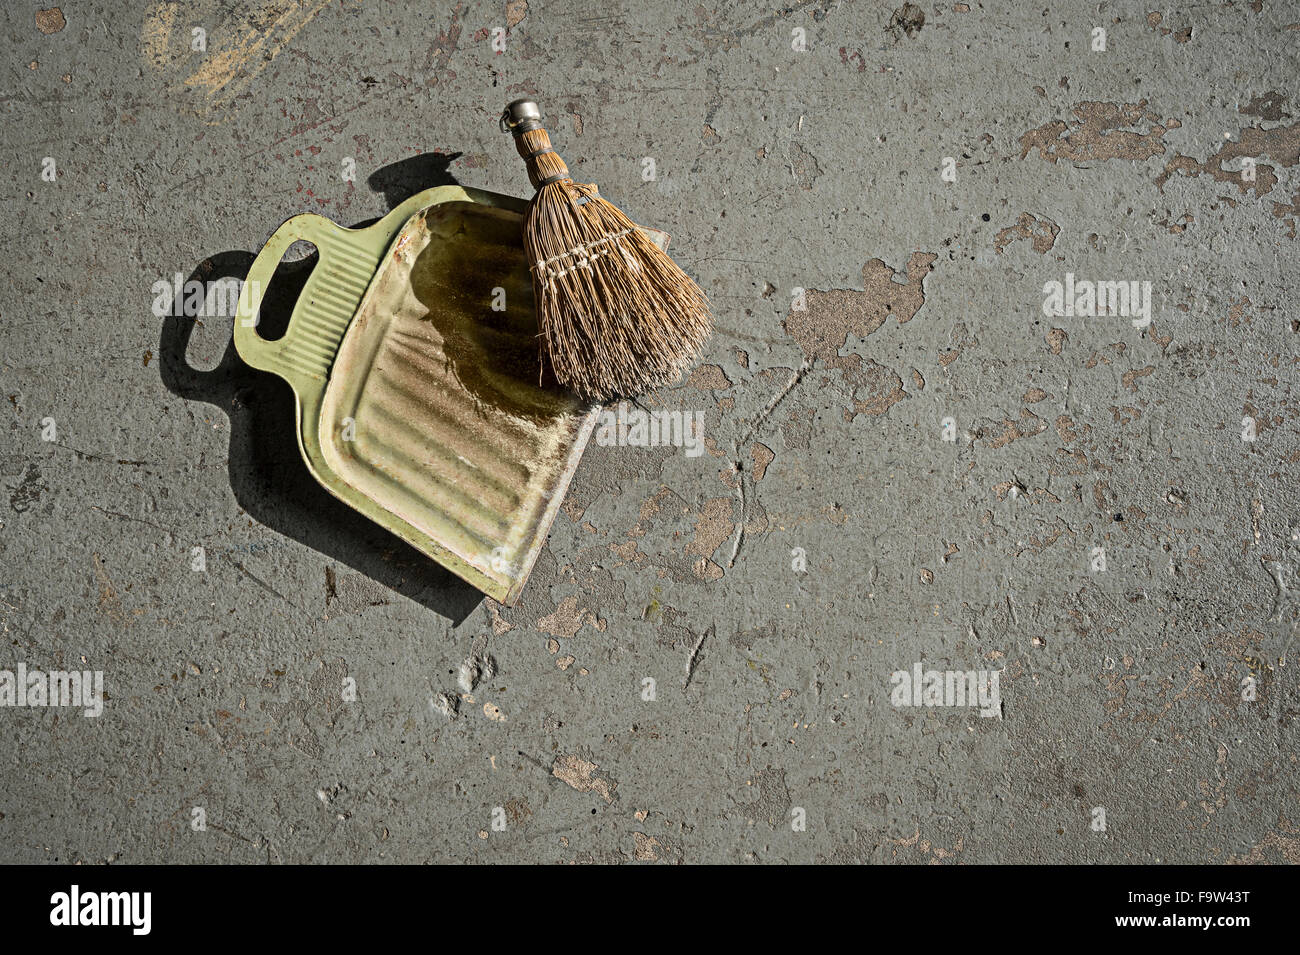 Dust Pan And Brush On Cement Floor - Stock Image